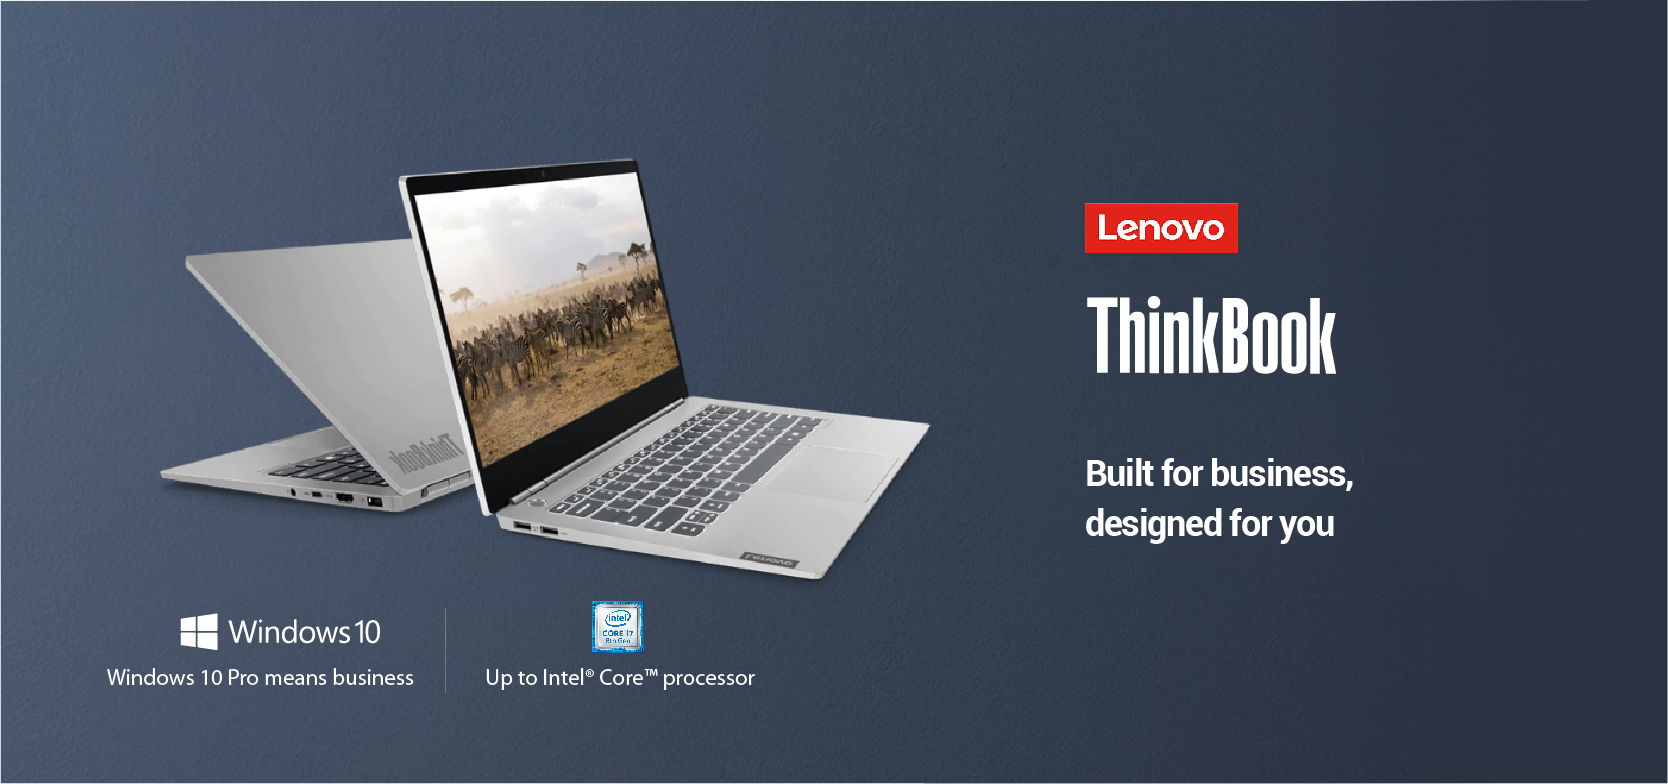 Lenovo ThinkBook - Built for Business, Designed for you